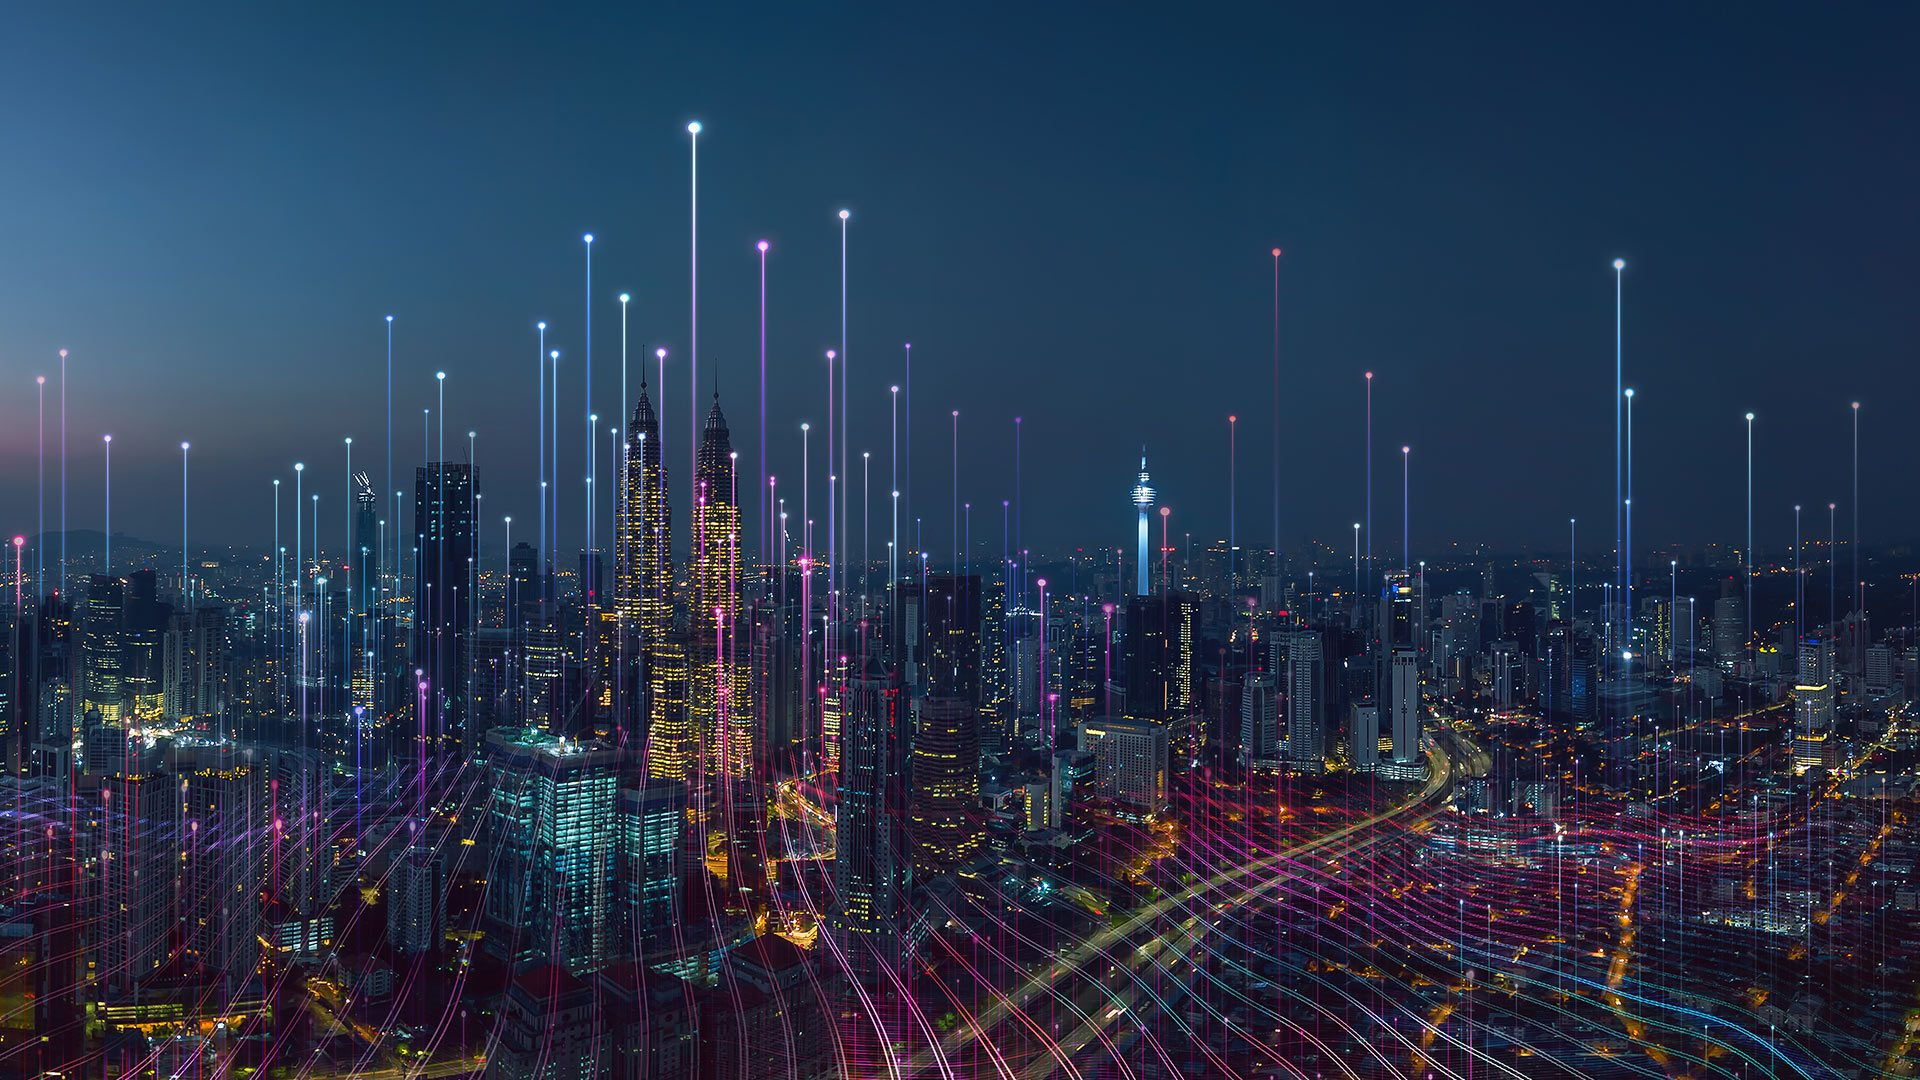 A city skyline showing a network overlay